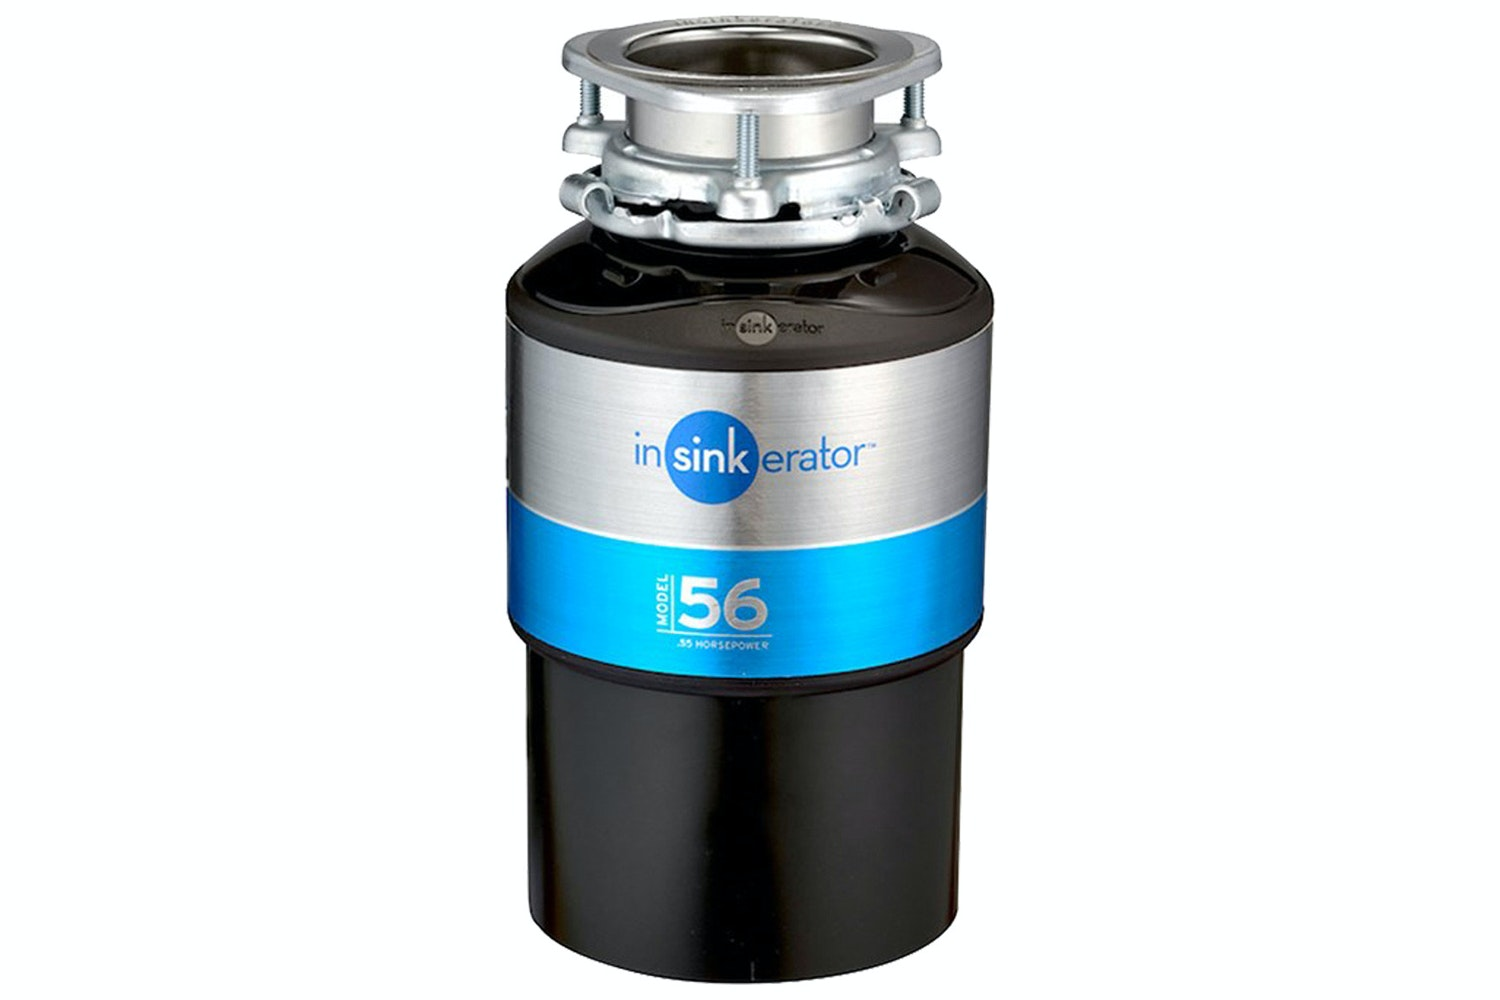 Insinkerator 56 Food Waste Disposer